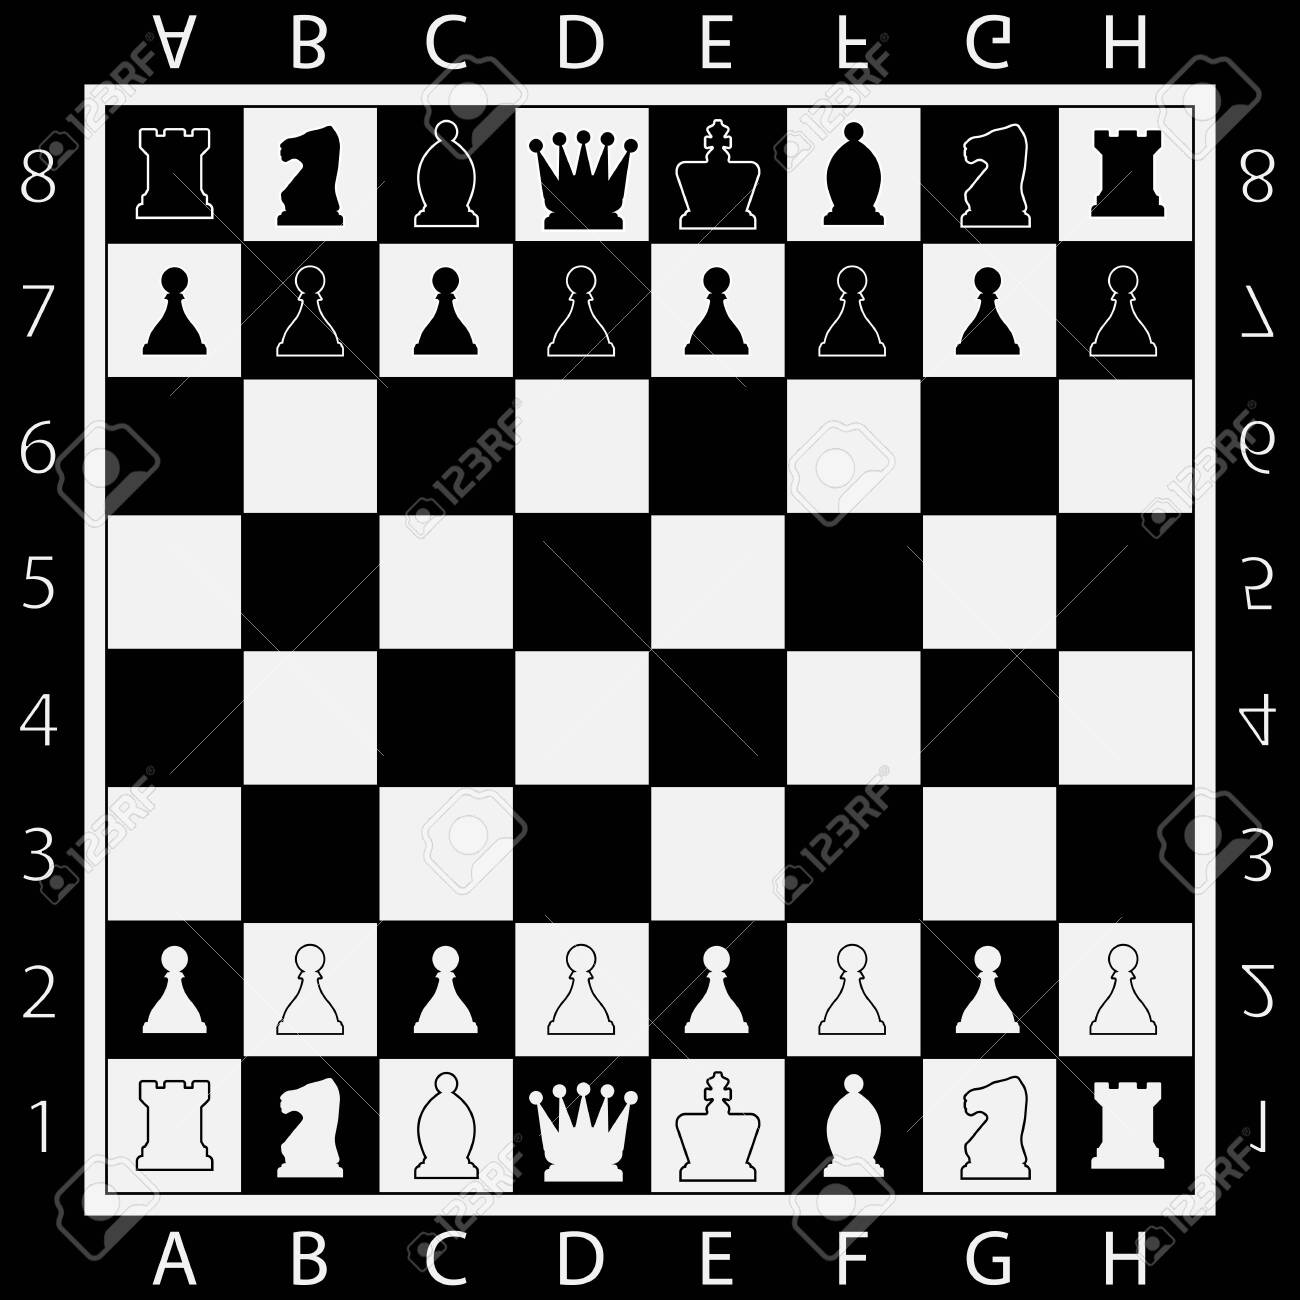 Chess Table online game app concept, strategy game Vector - 129549858